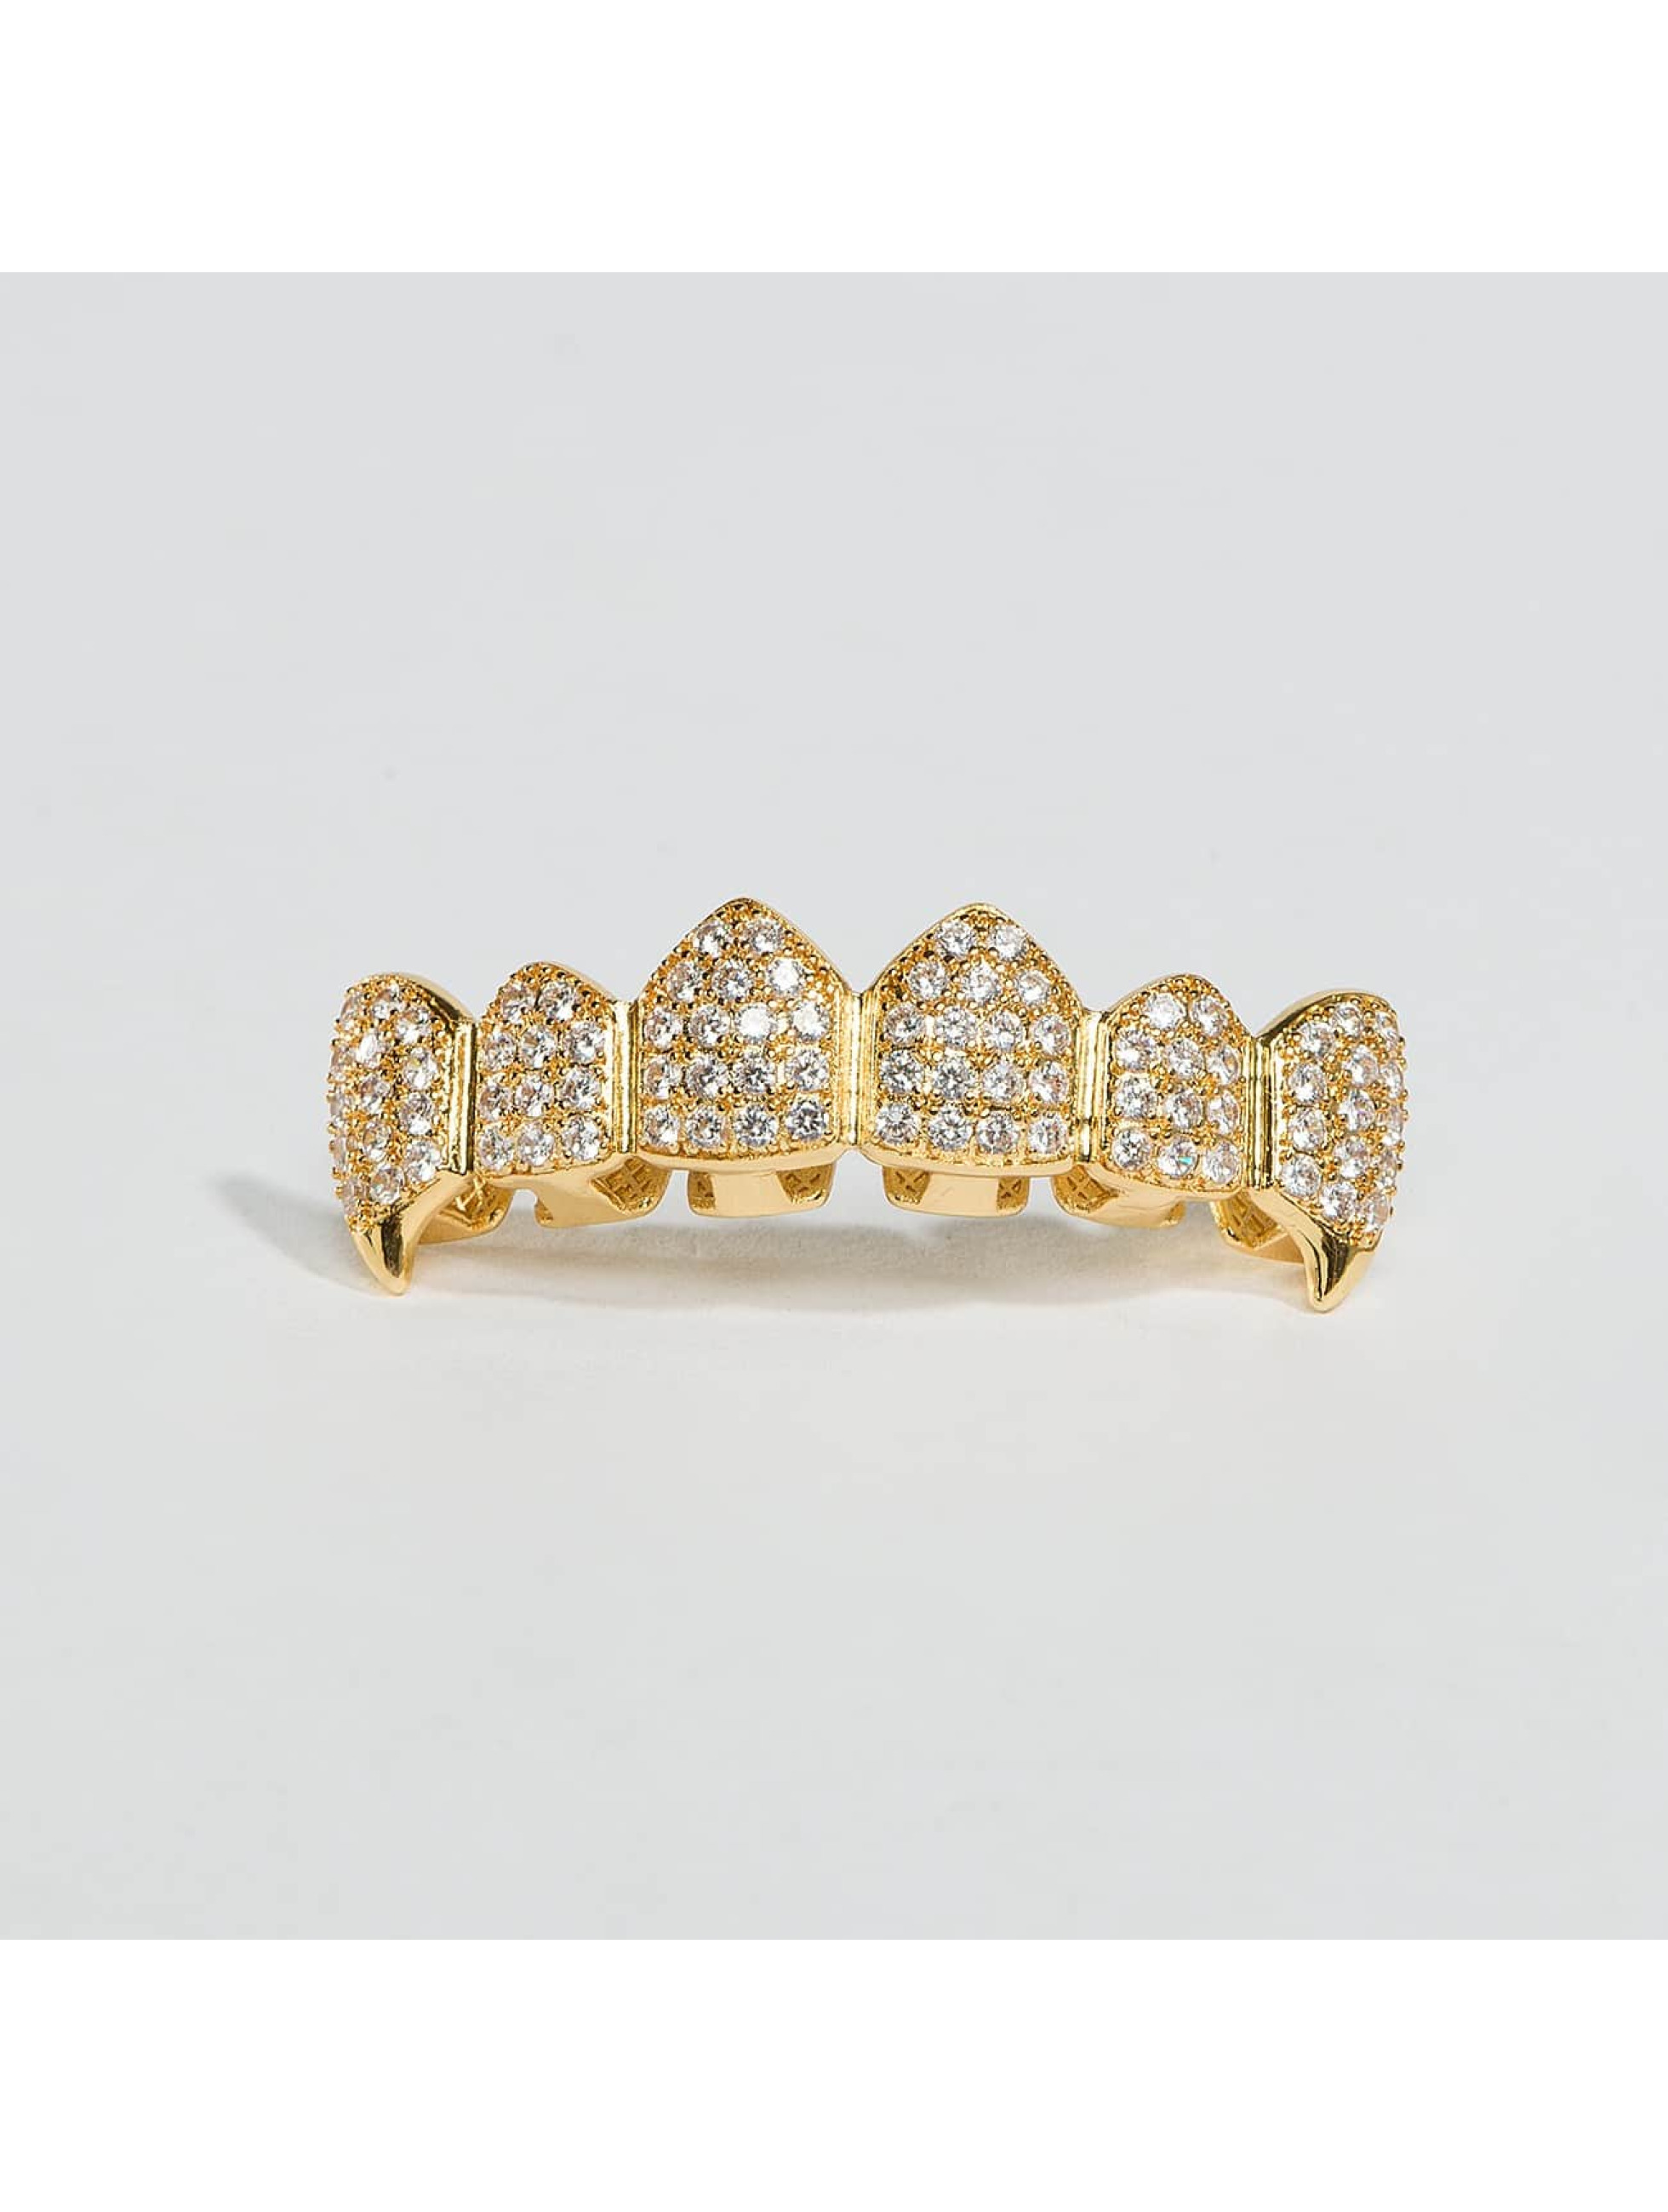 KING ICE Other Gold_Plated CZ Dracula Teeth Top gold